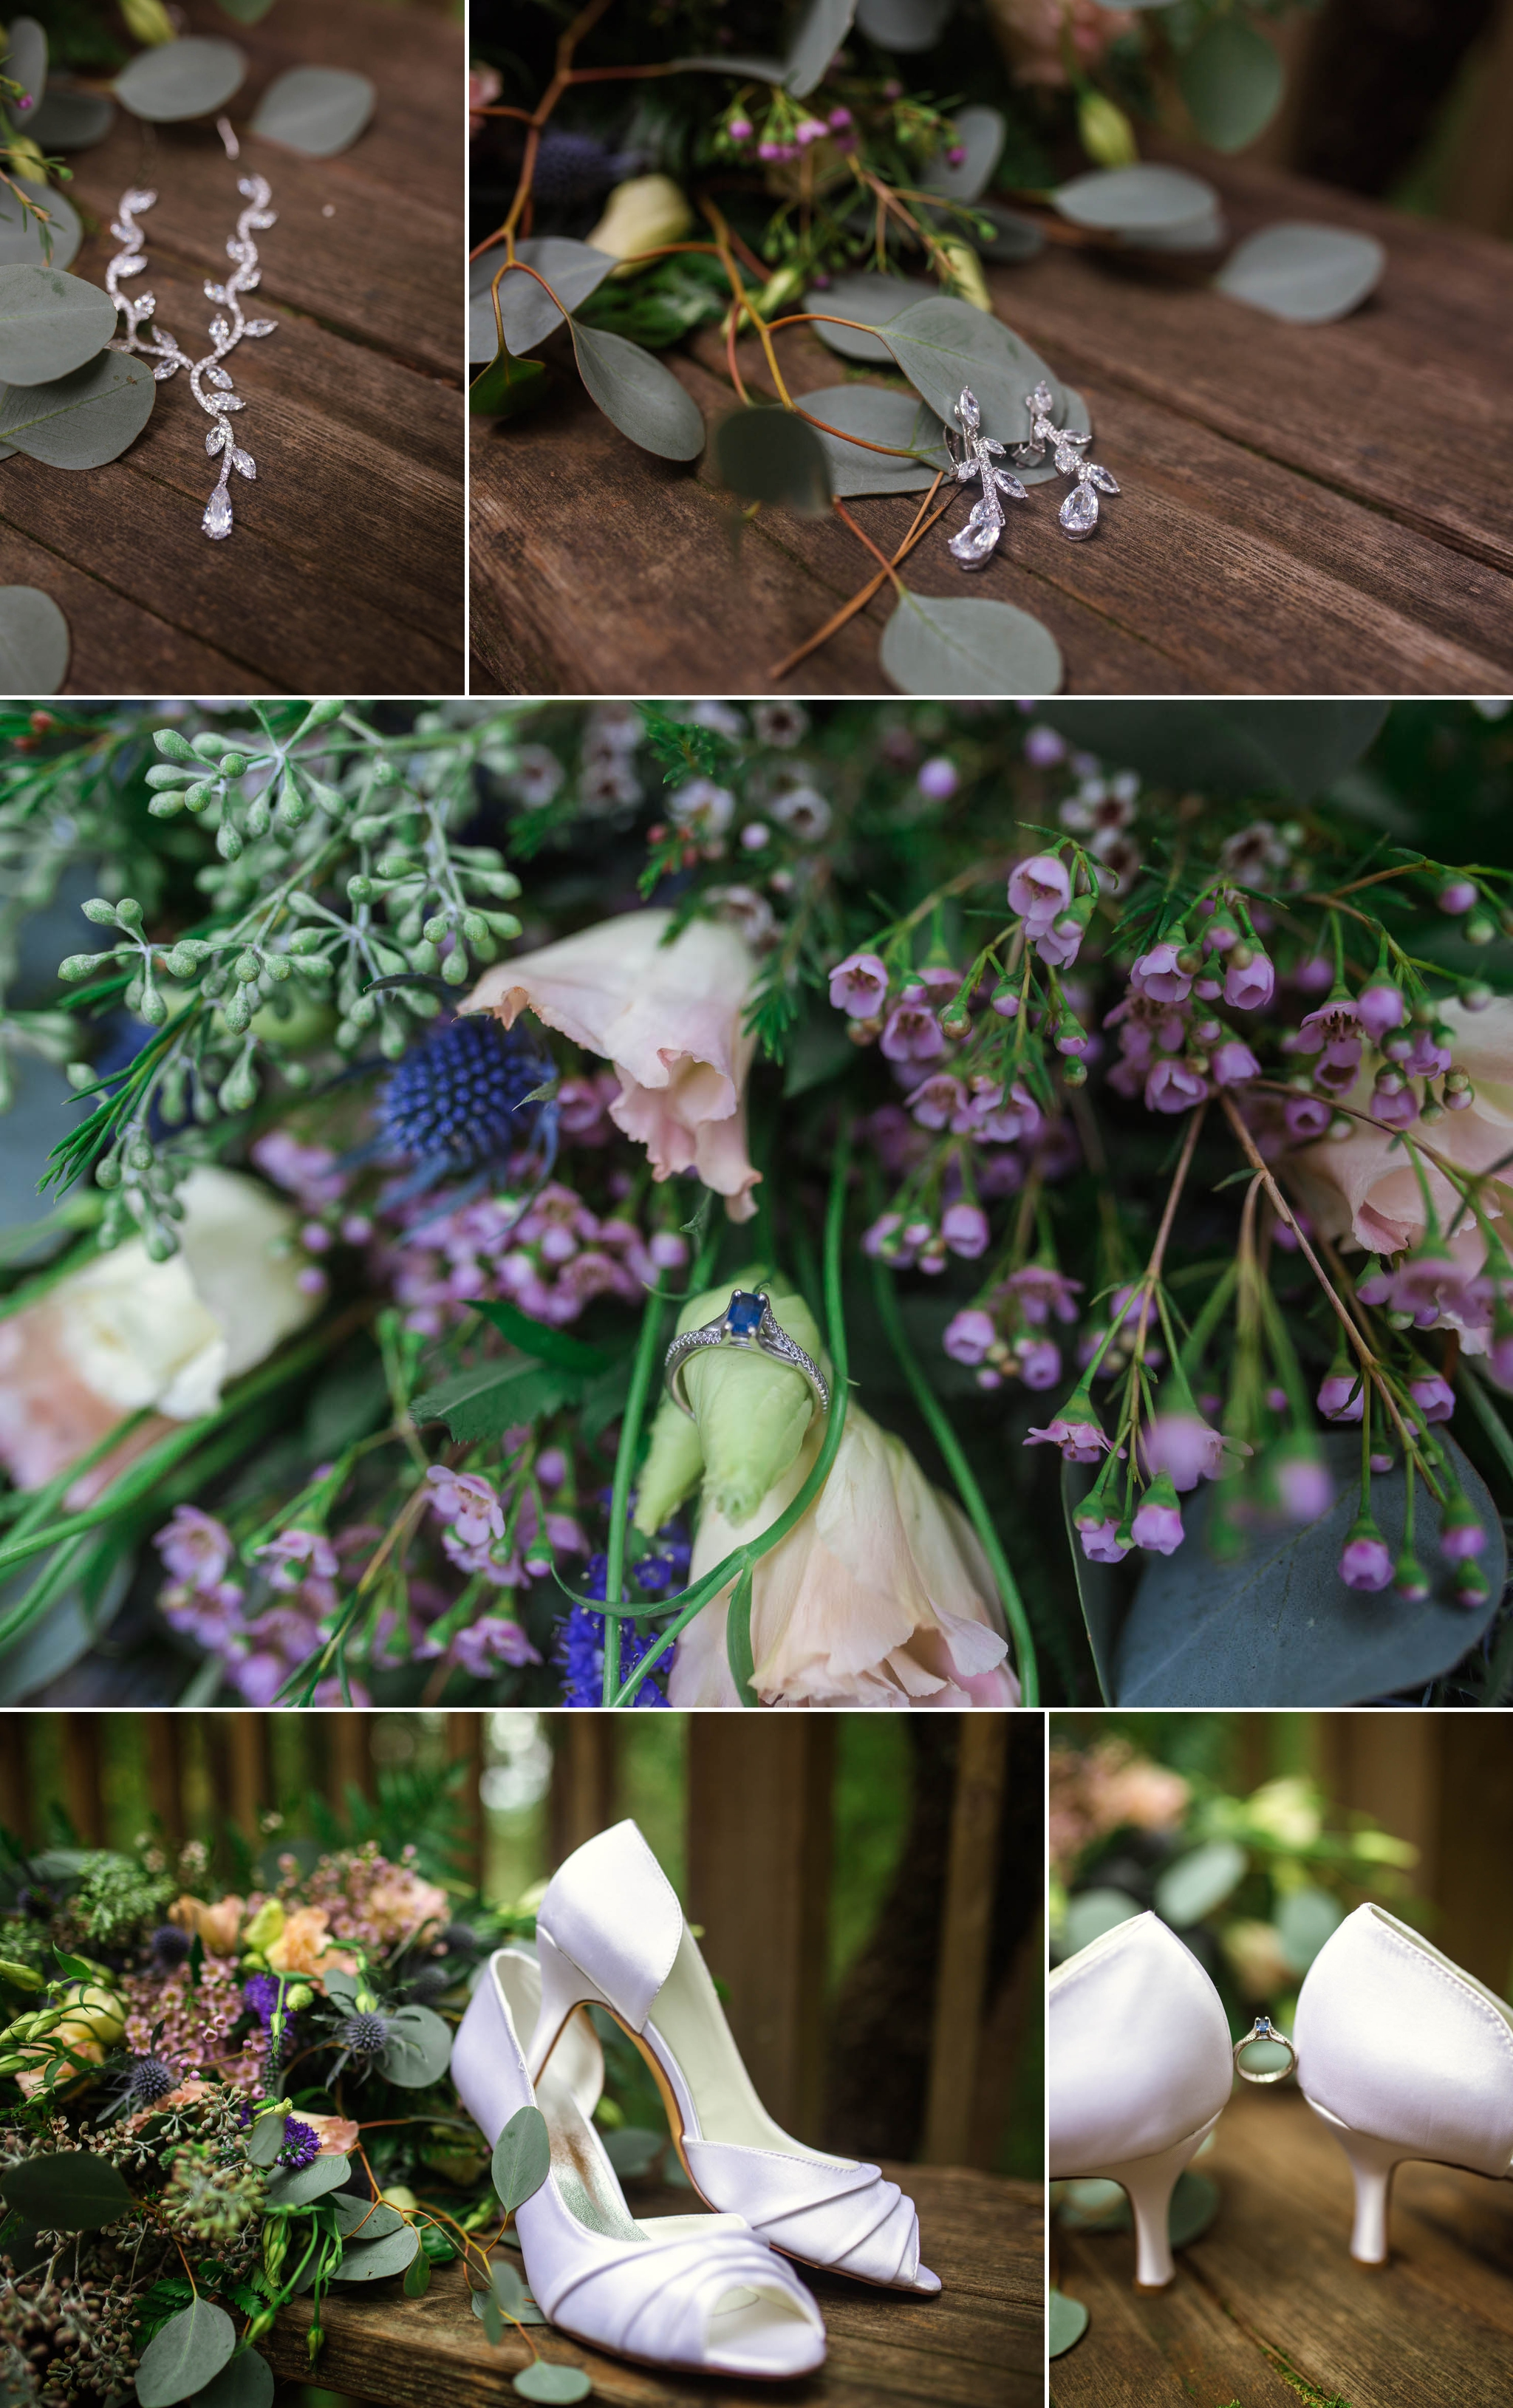 Erik + Meghan - Wedding at the Timerlake Earth Sanctuary in